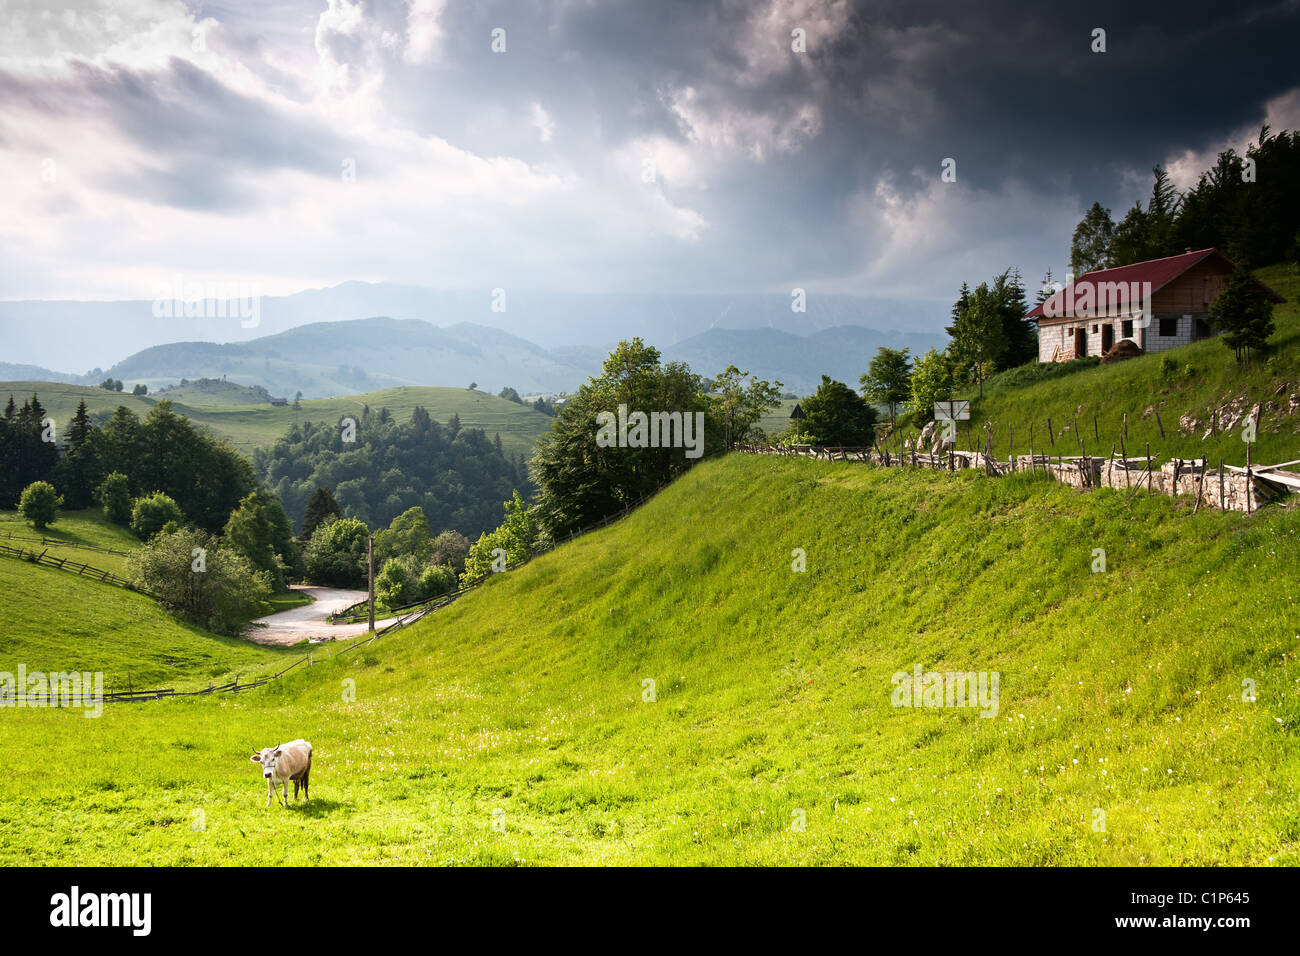 Beautiful vivid and amazing landscape from romanian countryside - Stock Image